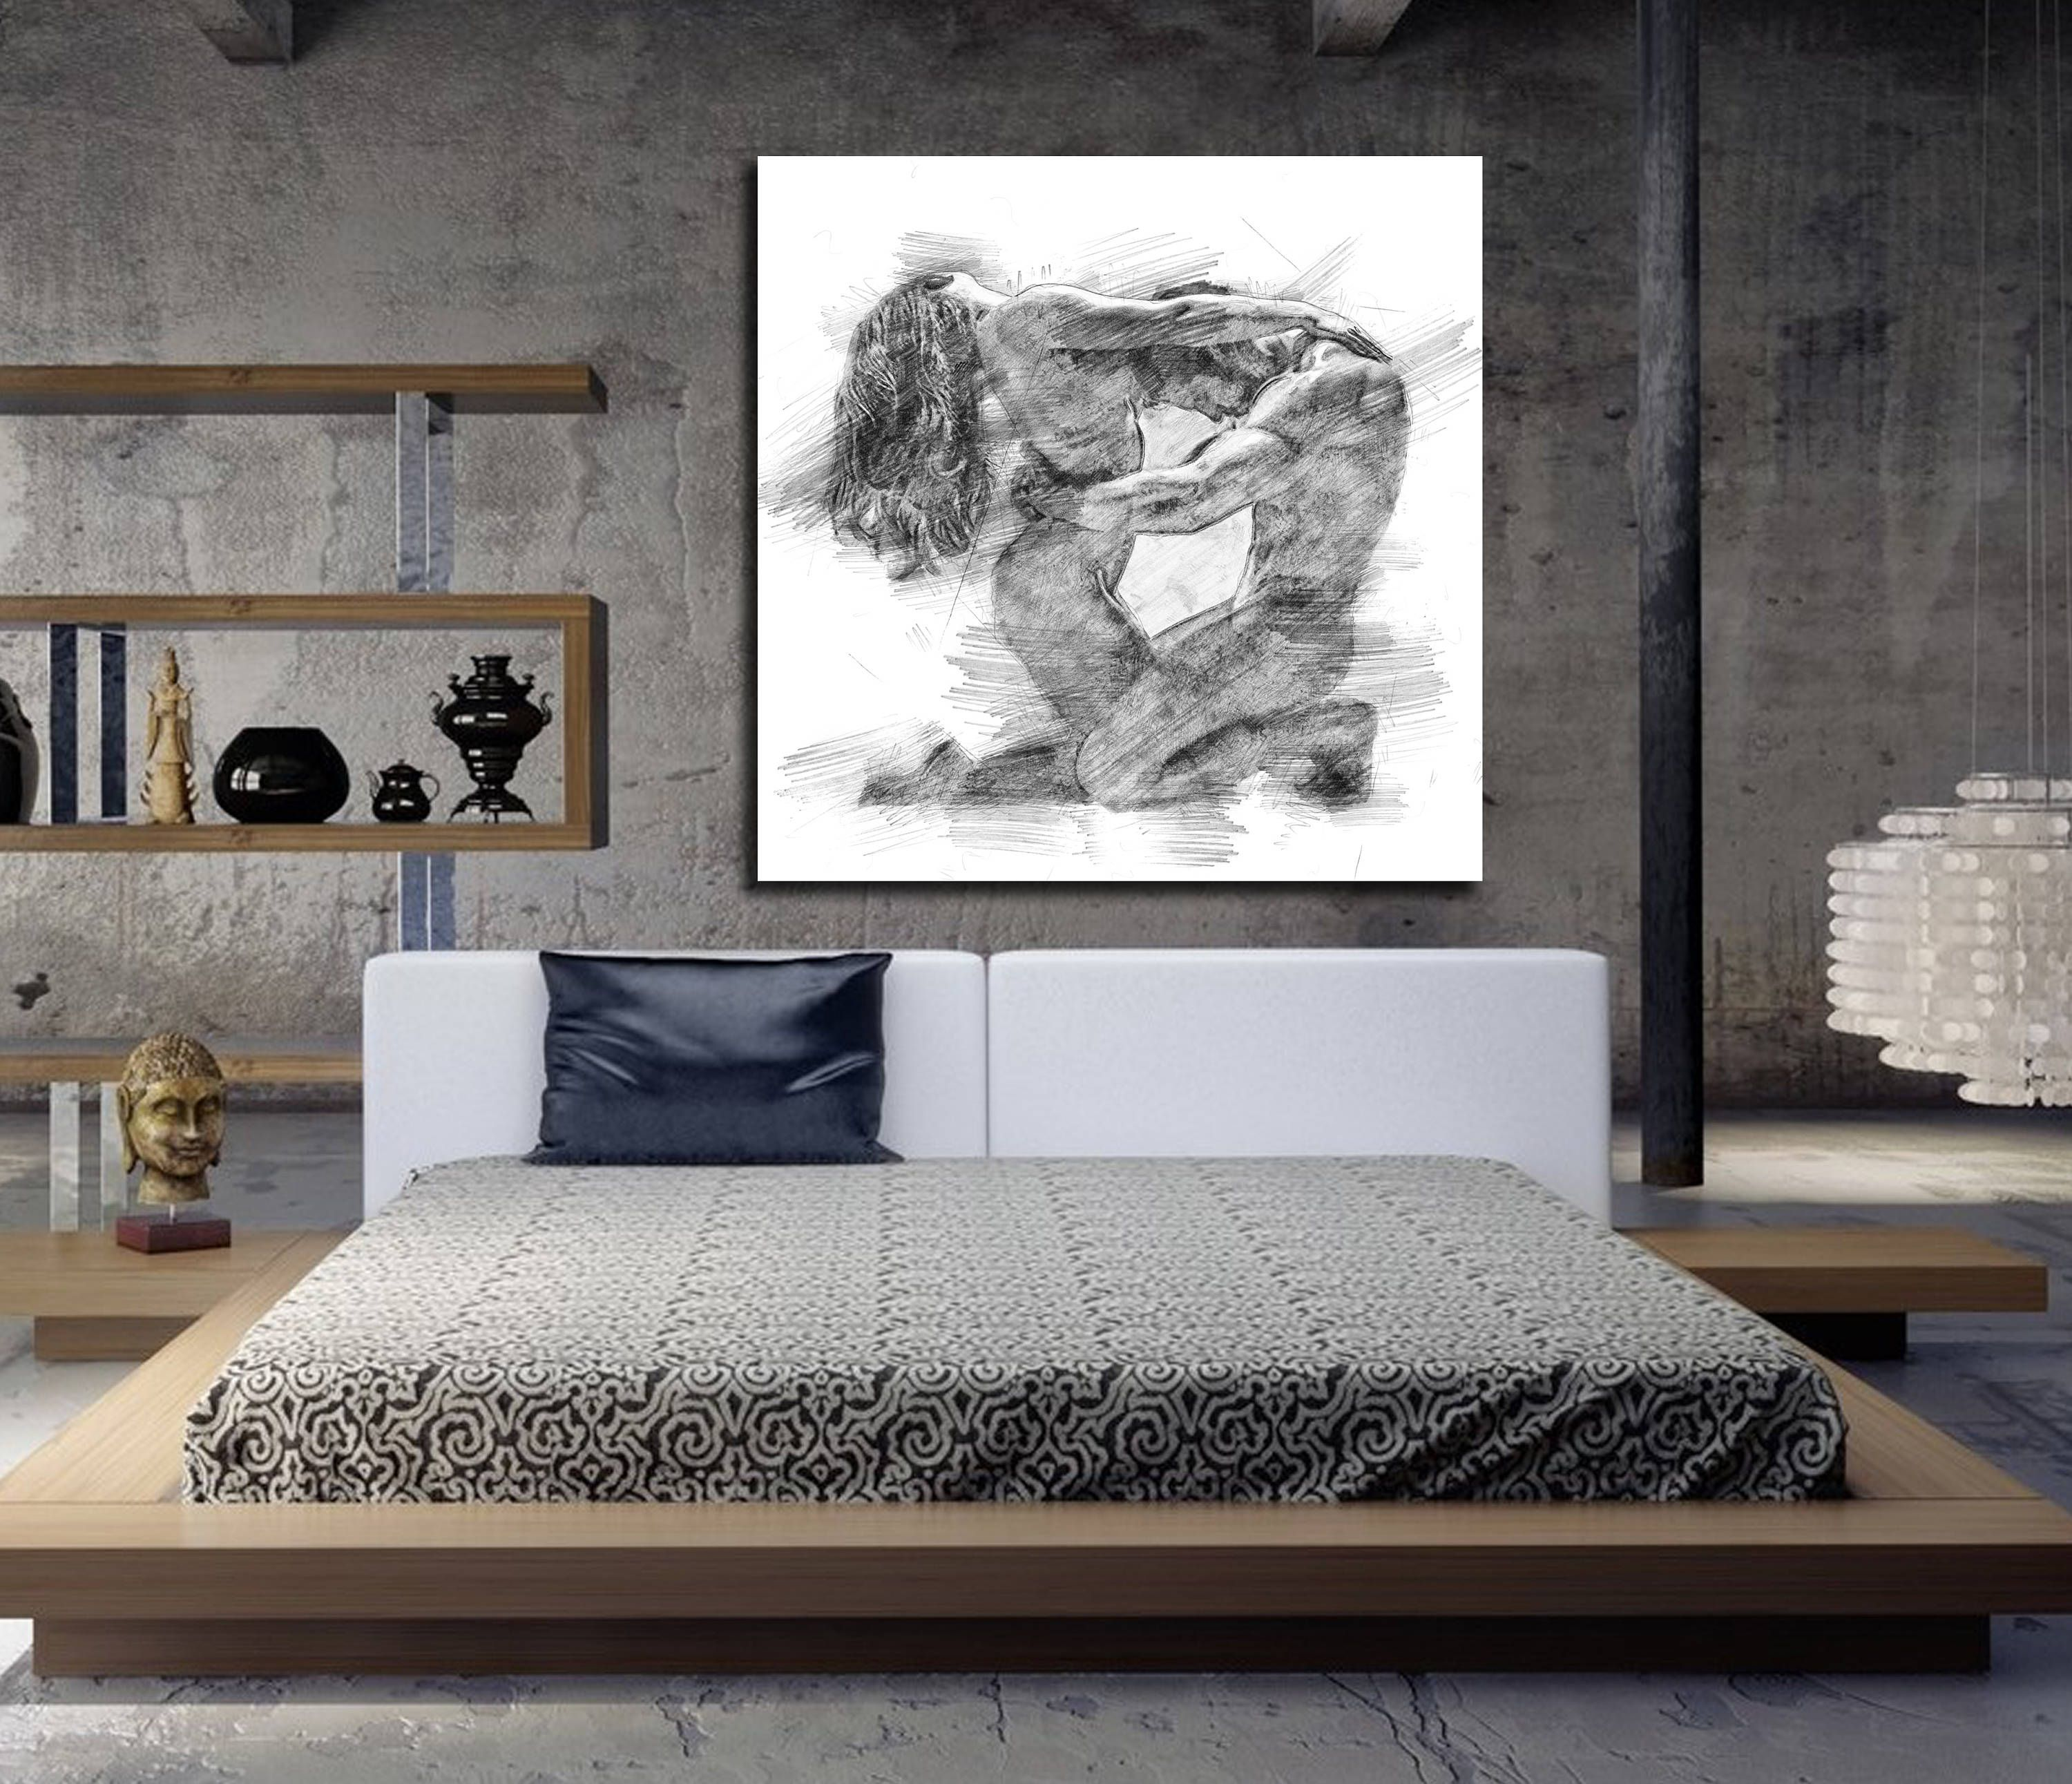 Black And White Paintings For Bedroom Bedroom Sets Black Modern Bedroom Black Bedroom Furniture Sets Pictures: CANVAS ART His & Hers Bedroom Wall Art, Abstract Art Print